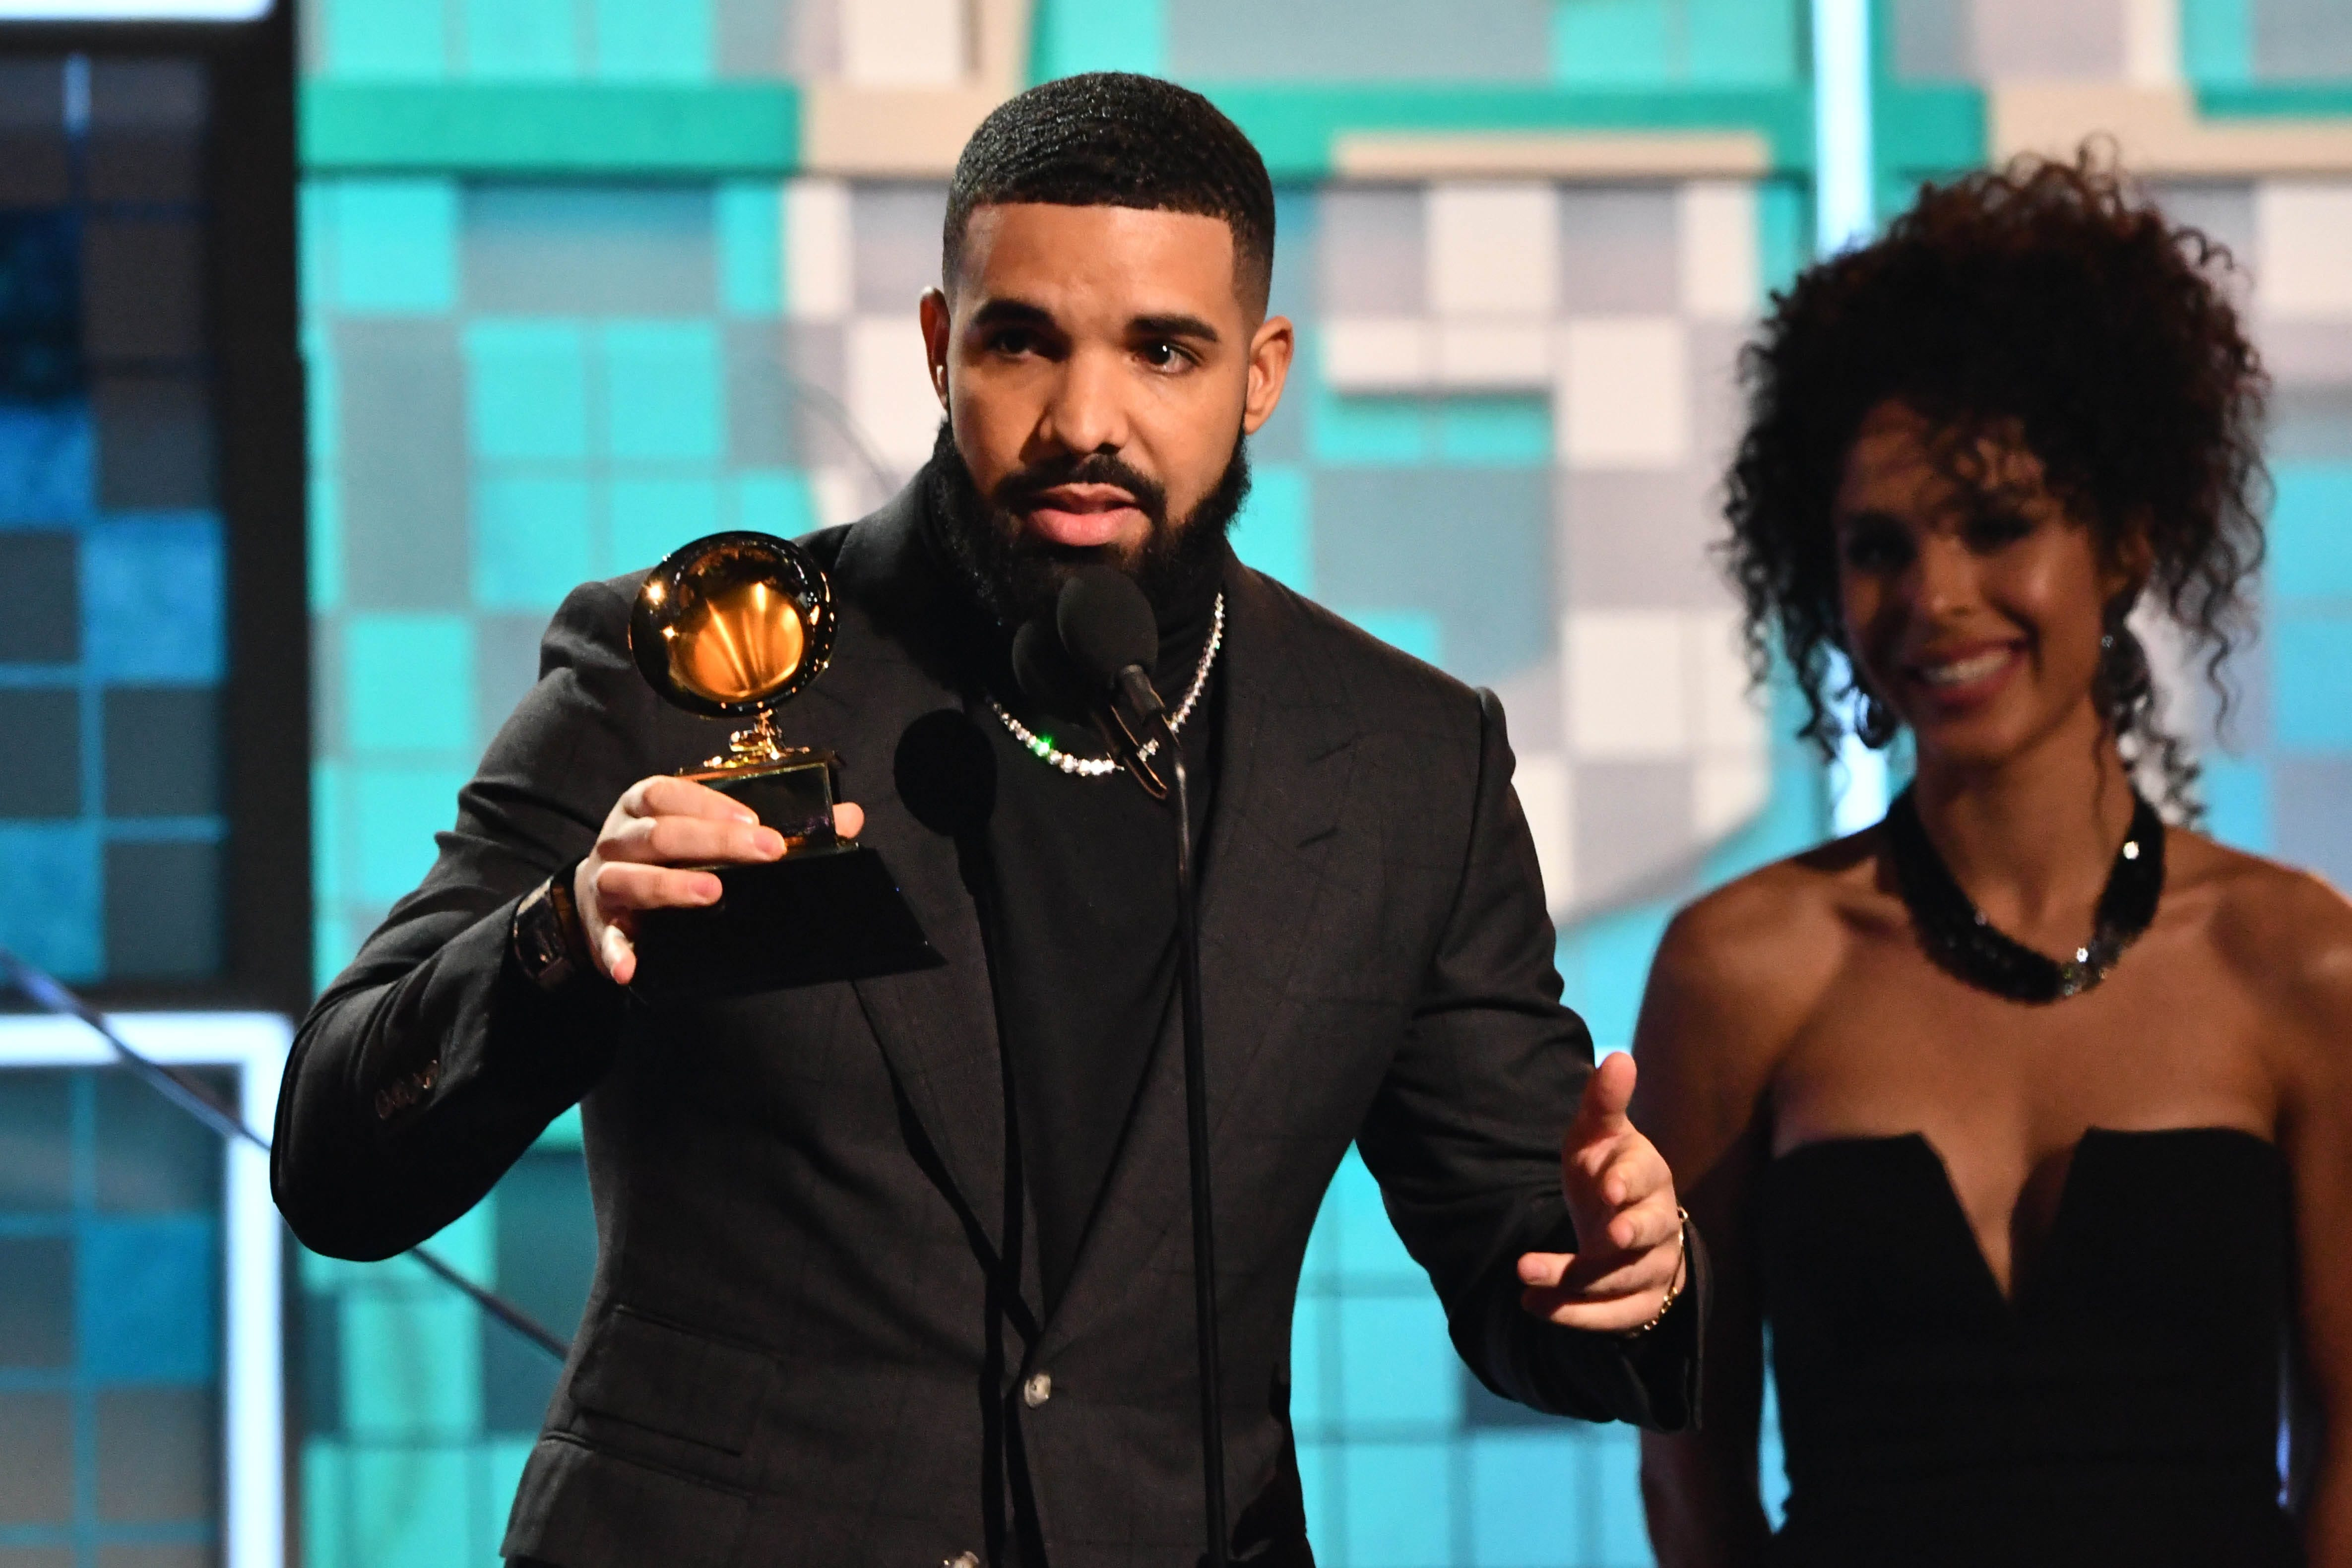 The Grammys did a few things right, but the show was still completely unwatchable